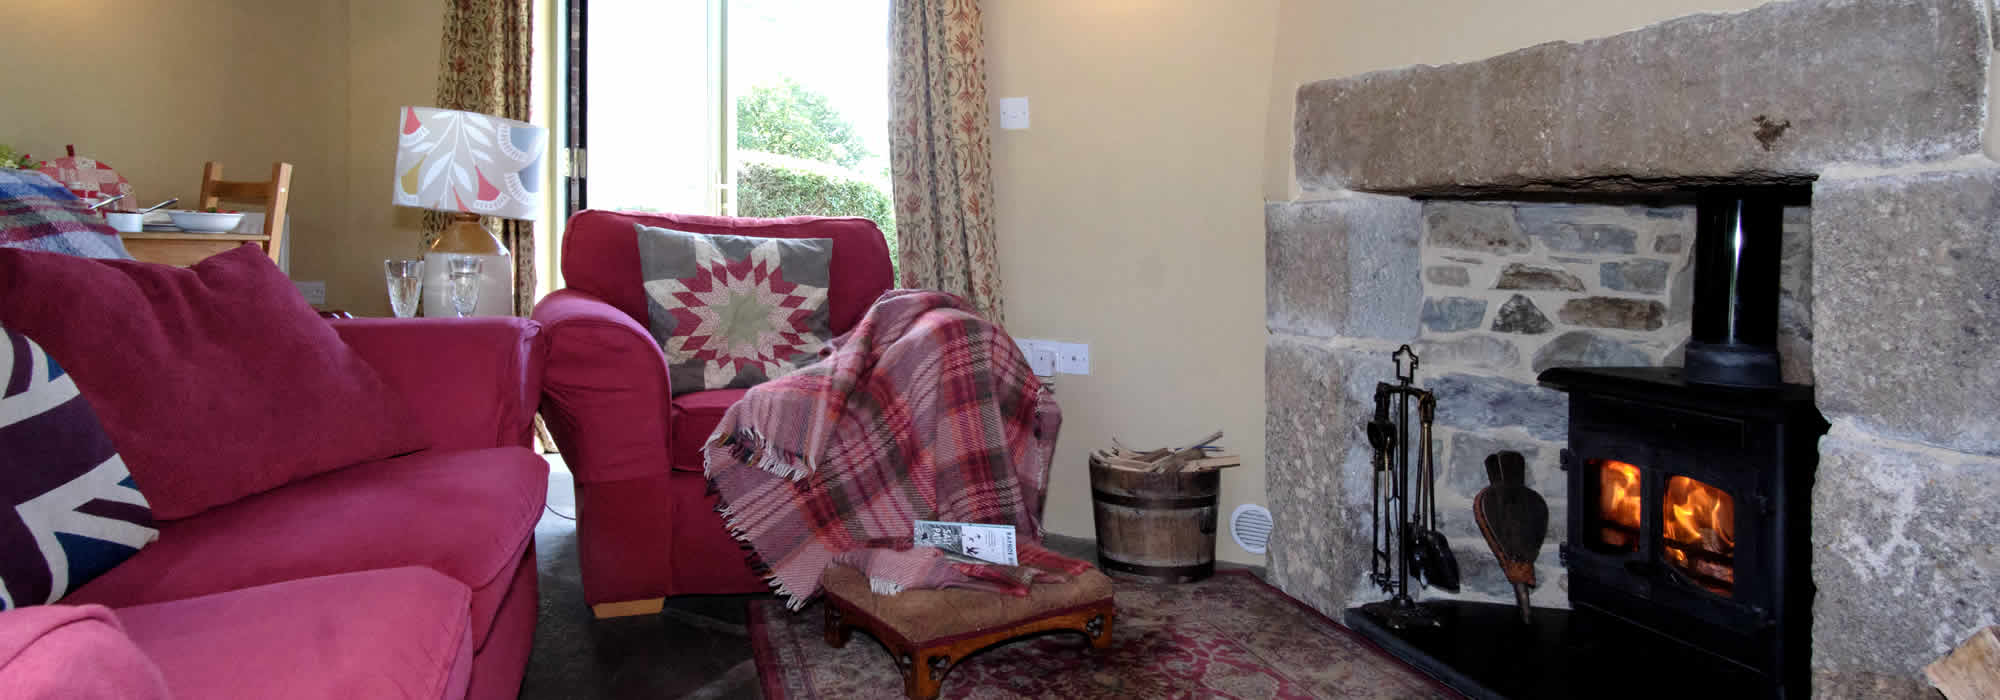 Monkstone Cottage double ensuite bedroom with views over Dartmoor